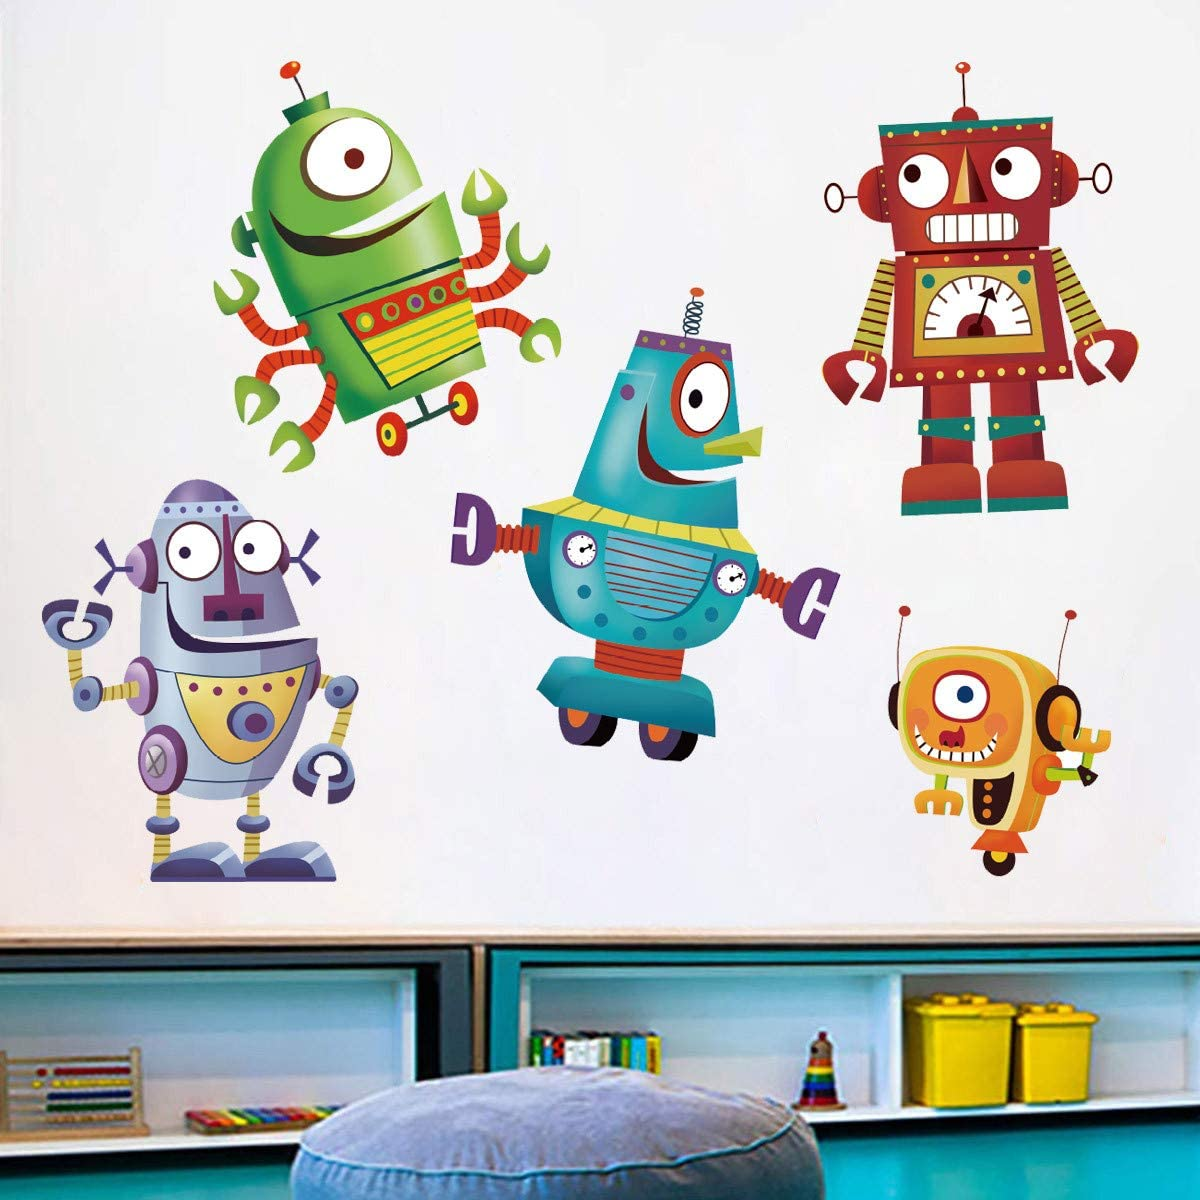 ufengke Cartoon Robot Wall Stickers DIY Removable Vinyl Wall Decals Art Decor for Kids Boys Nursery Bedroom Playroom